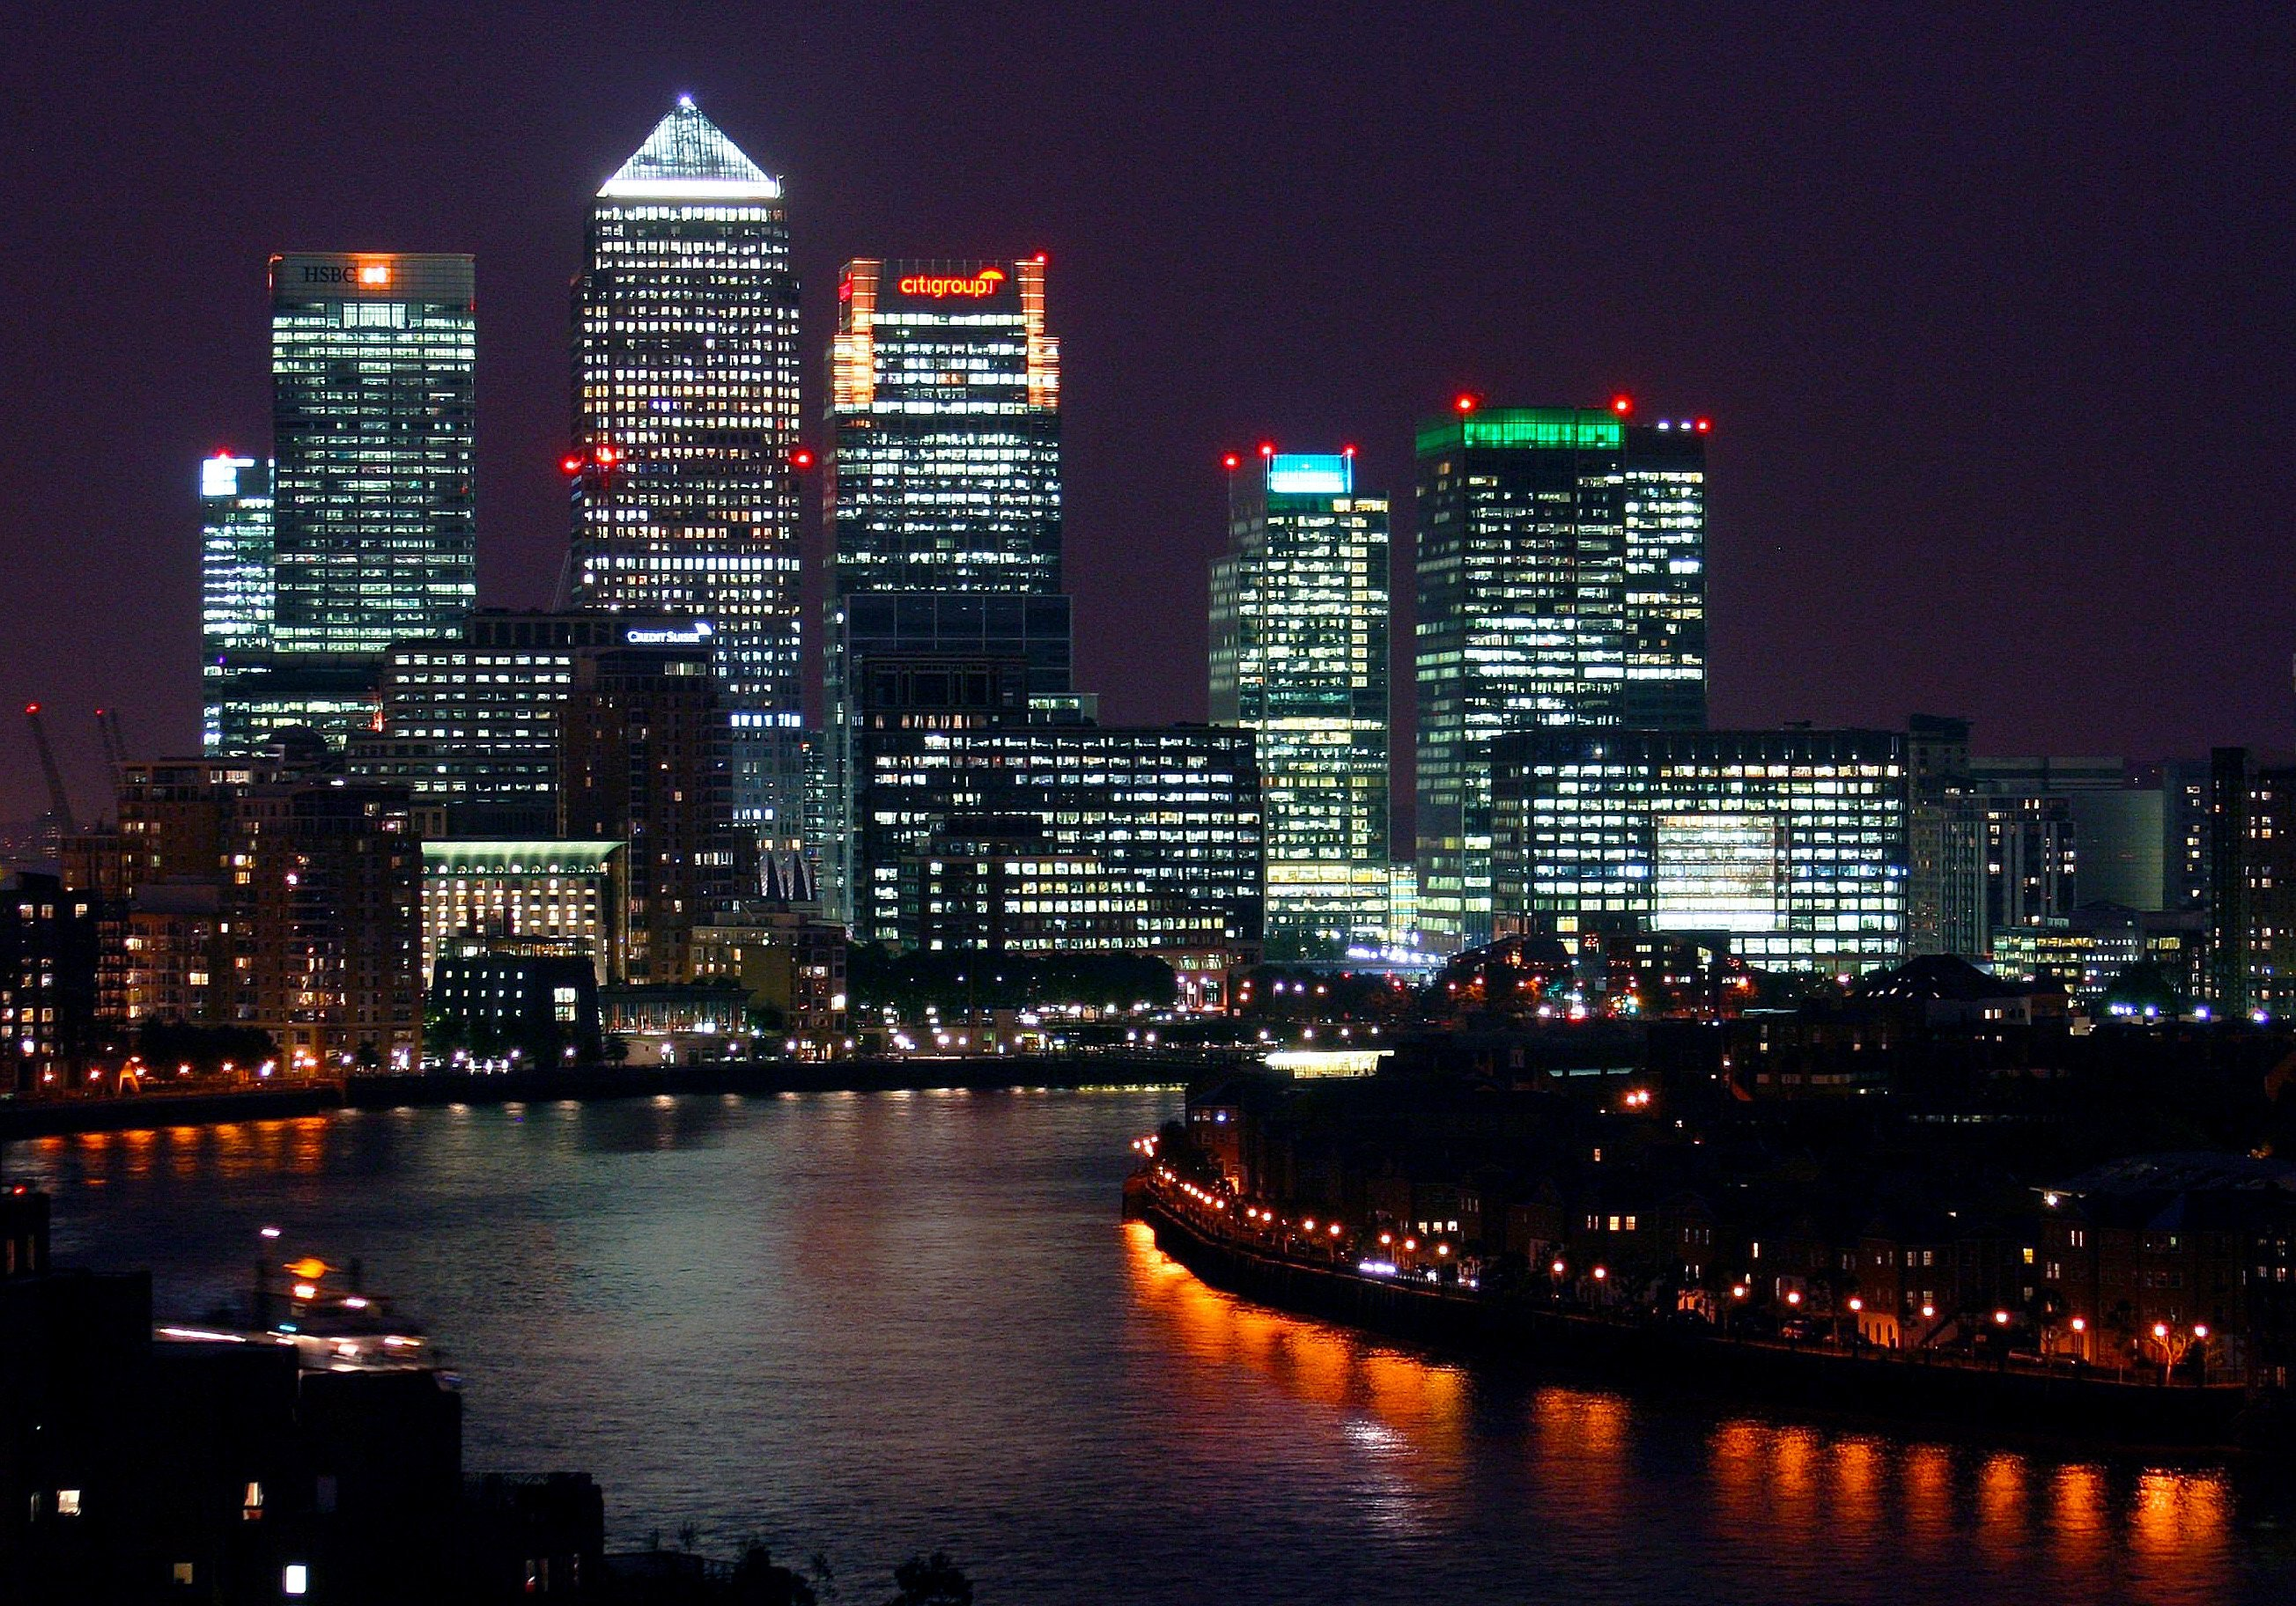 Private banking: How HSBC is leading the evolution of